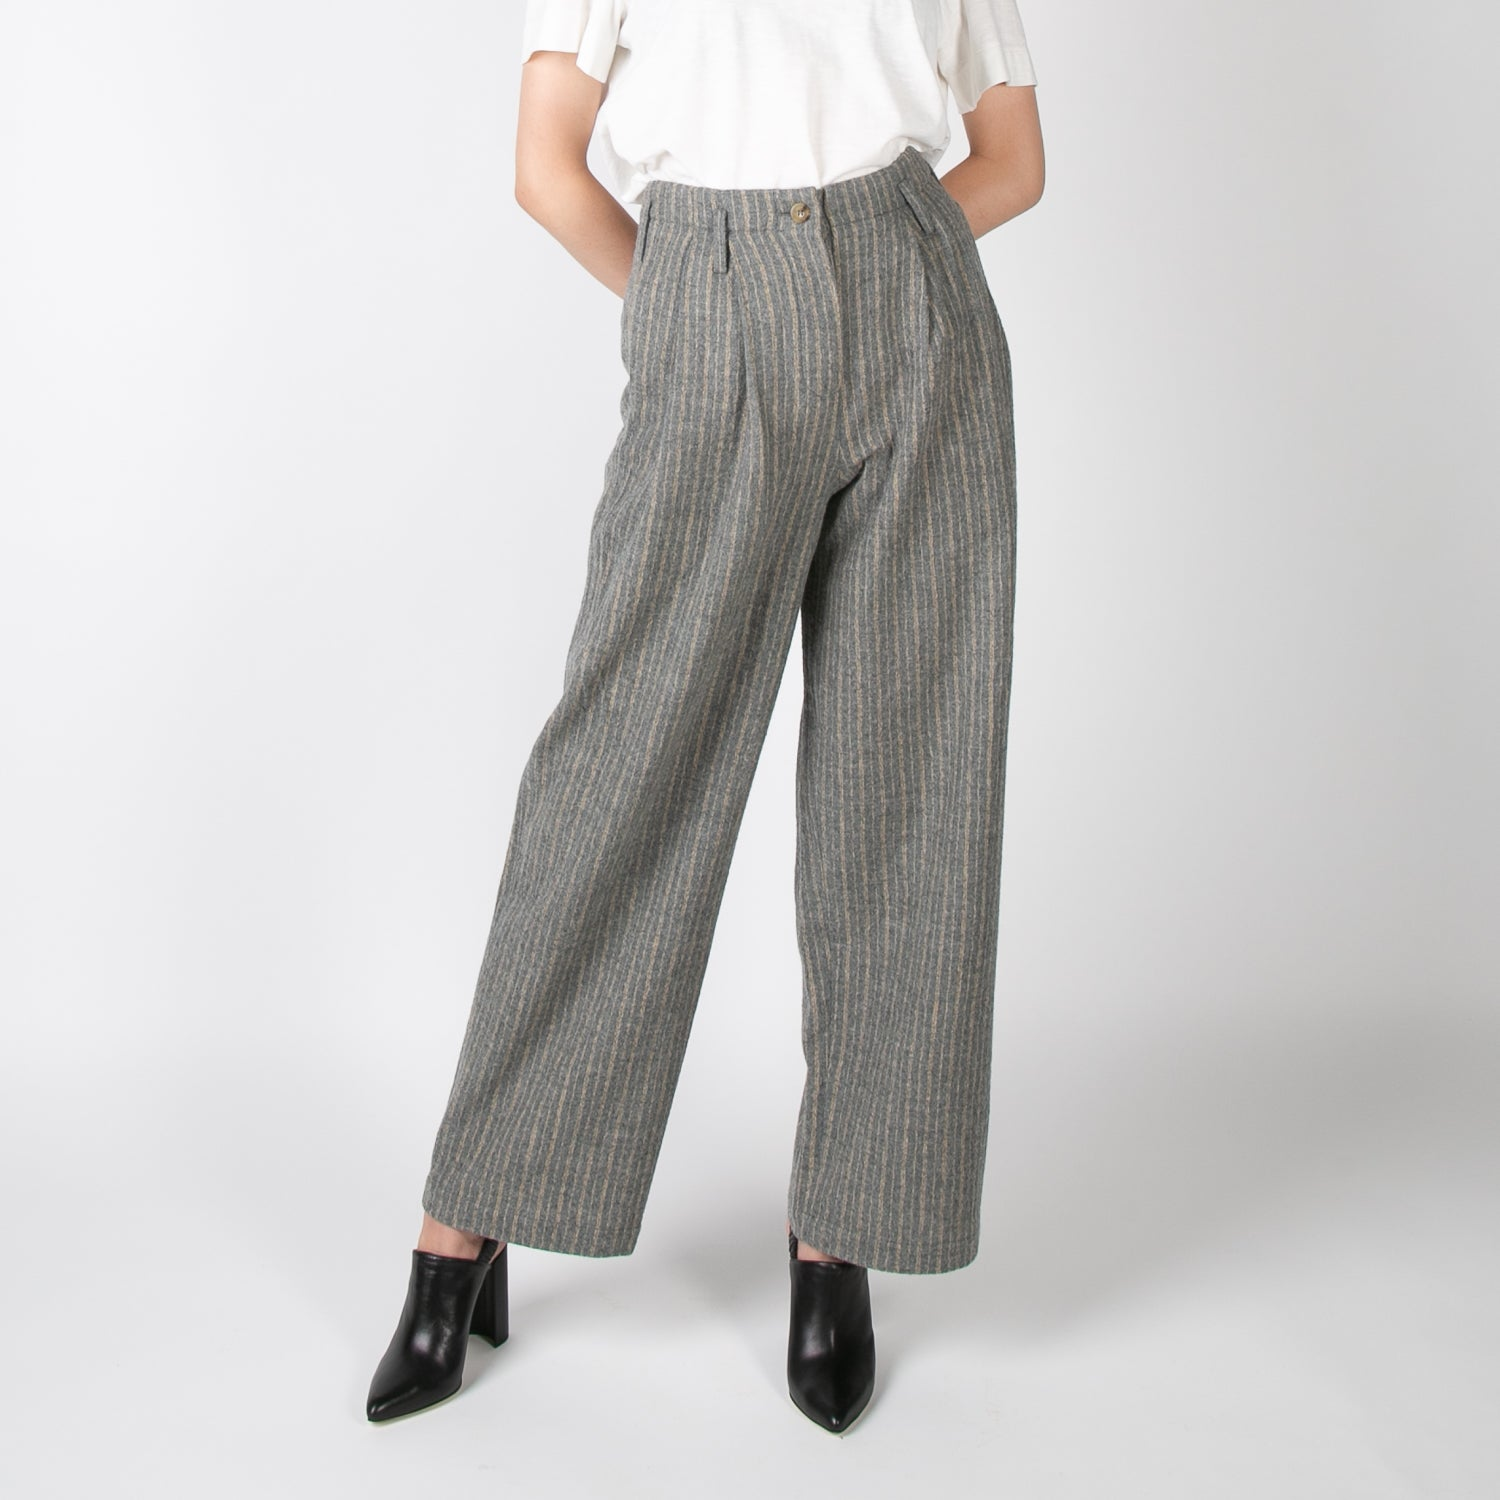 grey and yellow stripped wool pants by Dawei at Secret Location